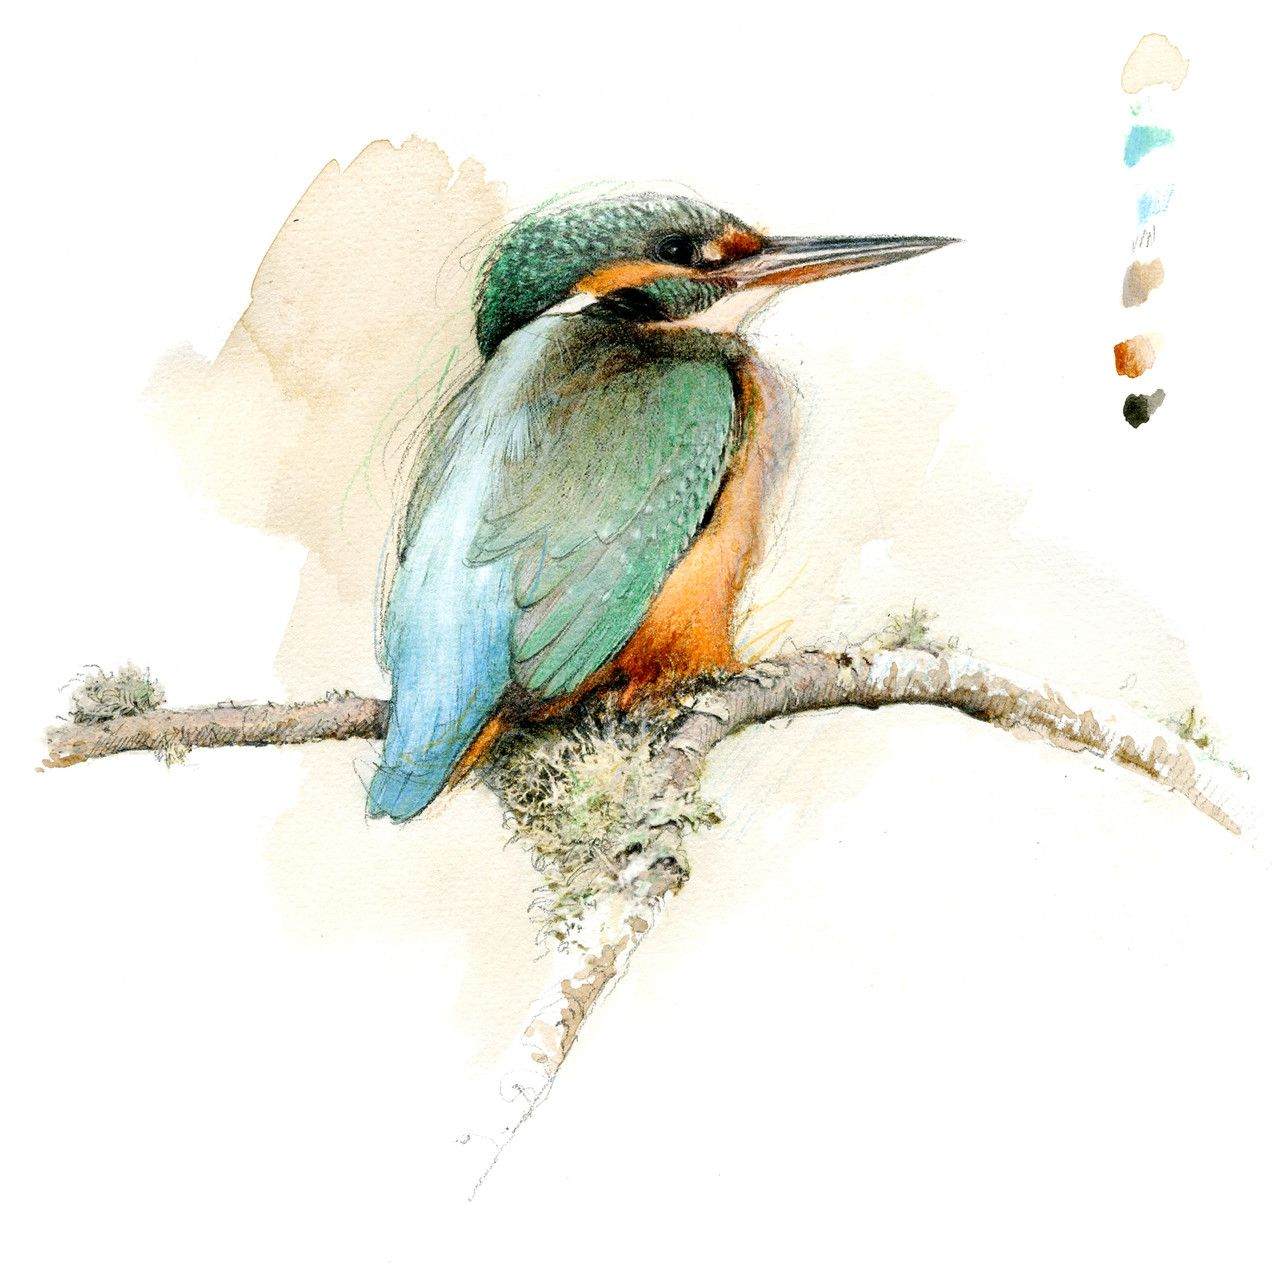 Epingle Par Antonio Carlos Sur Aquarela Oiseau D Aquarelle